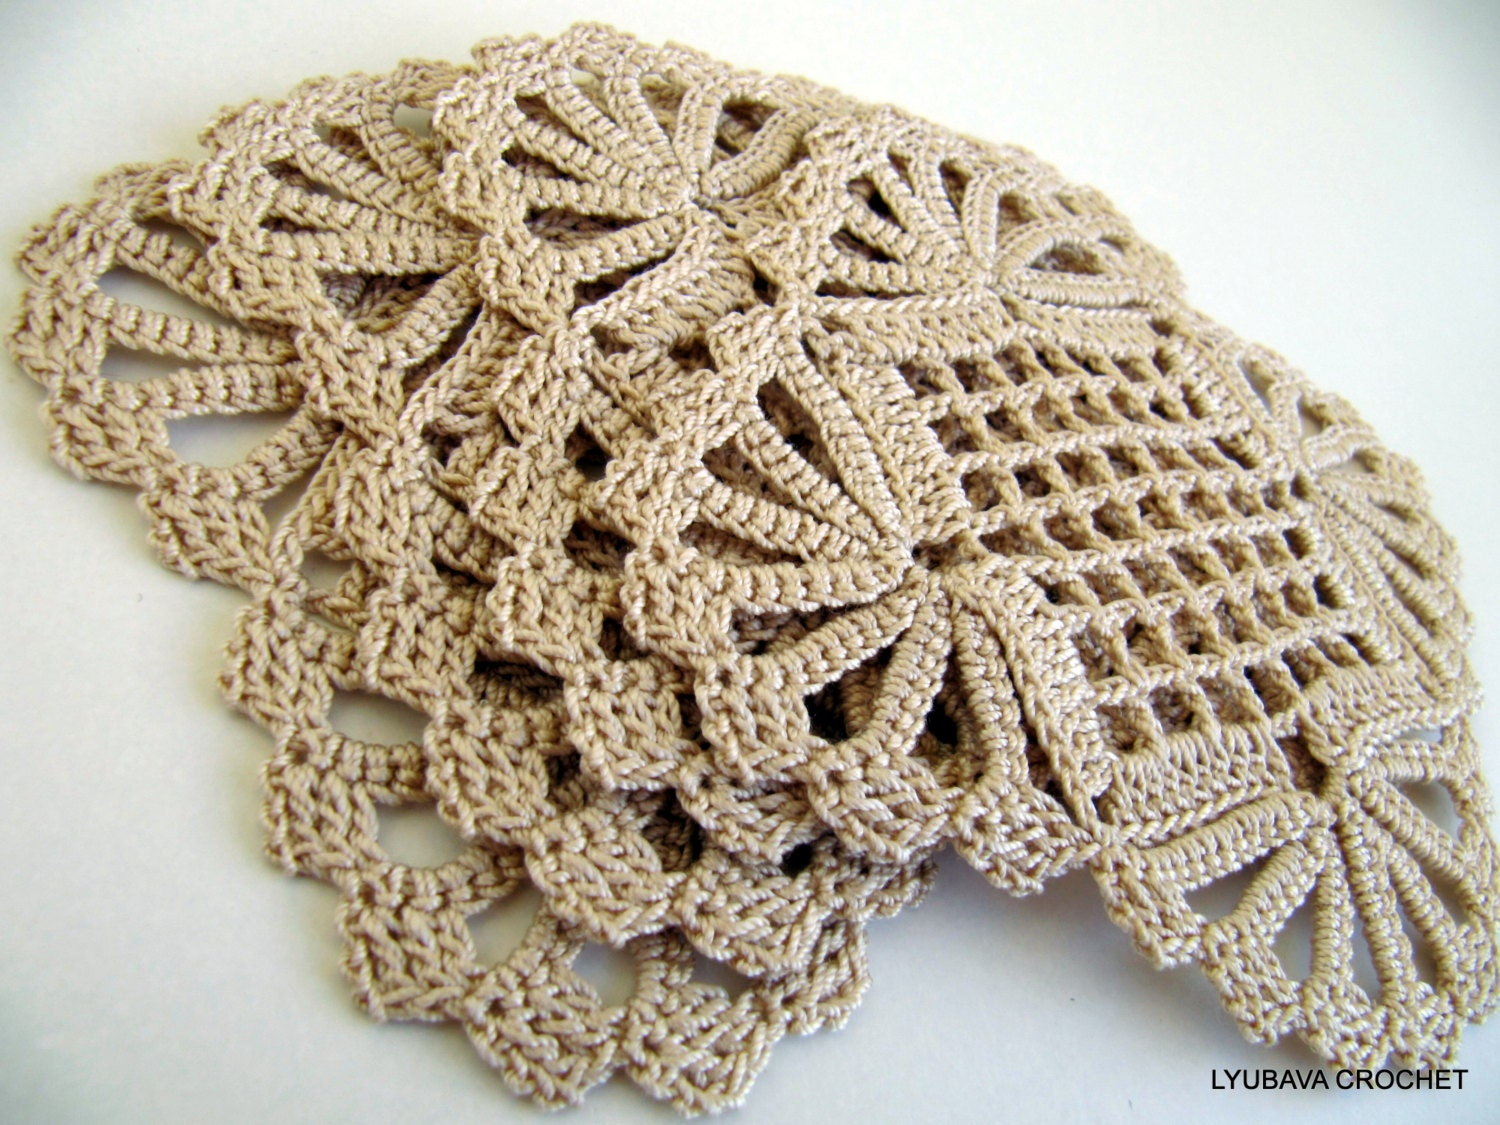 Crochet Patterns Coasters : CROCHET COASTER PATTERN Shabby Chic Decor by LyubavaCrochet